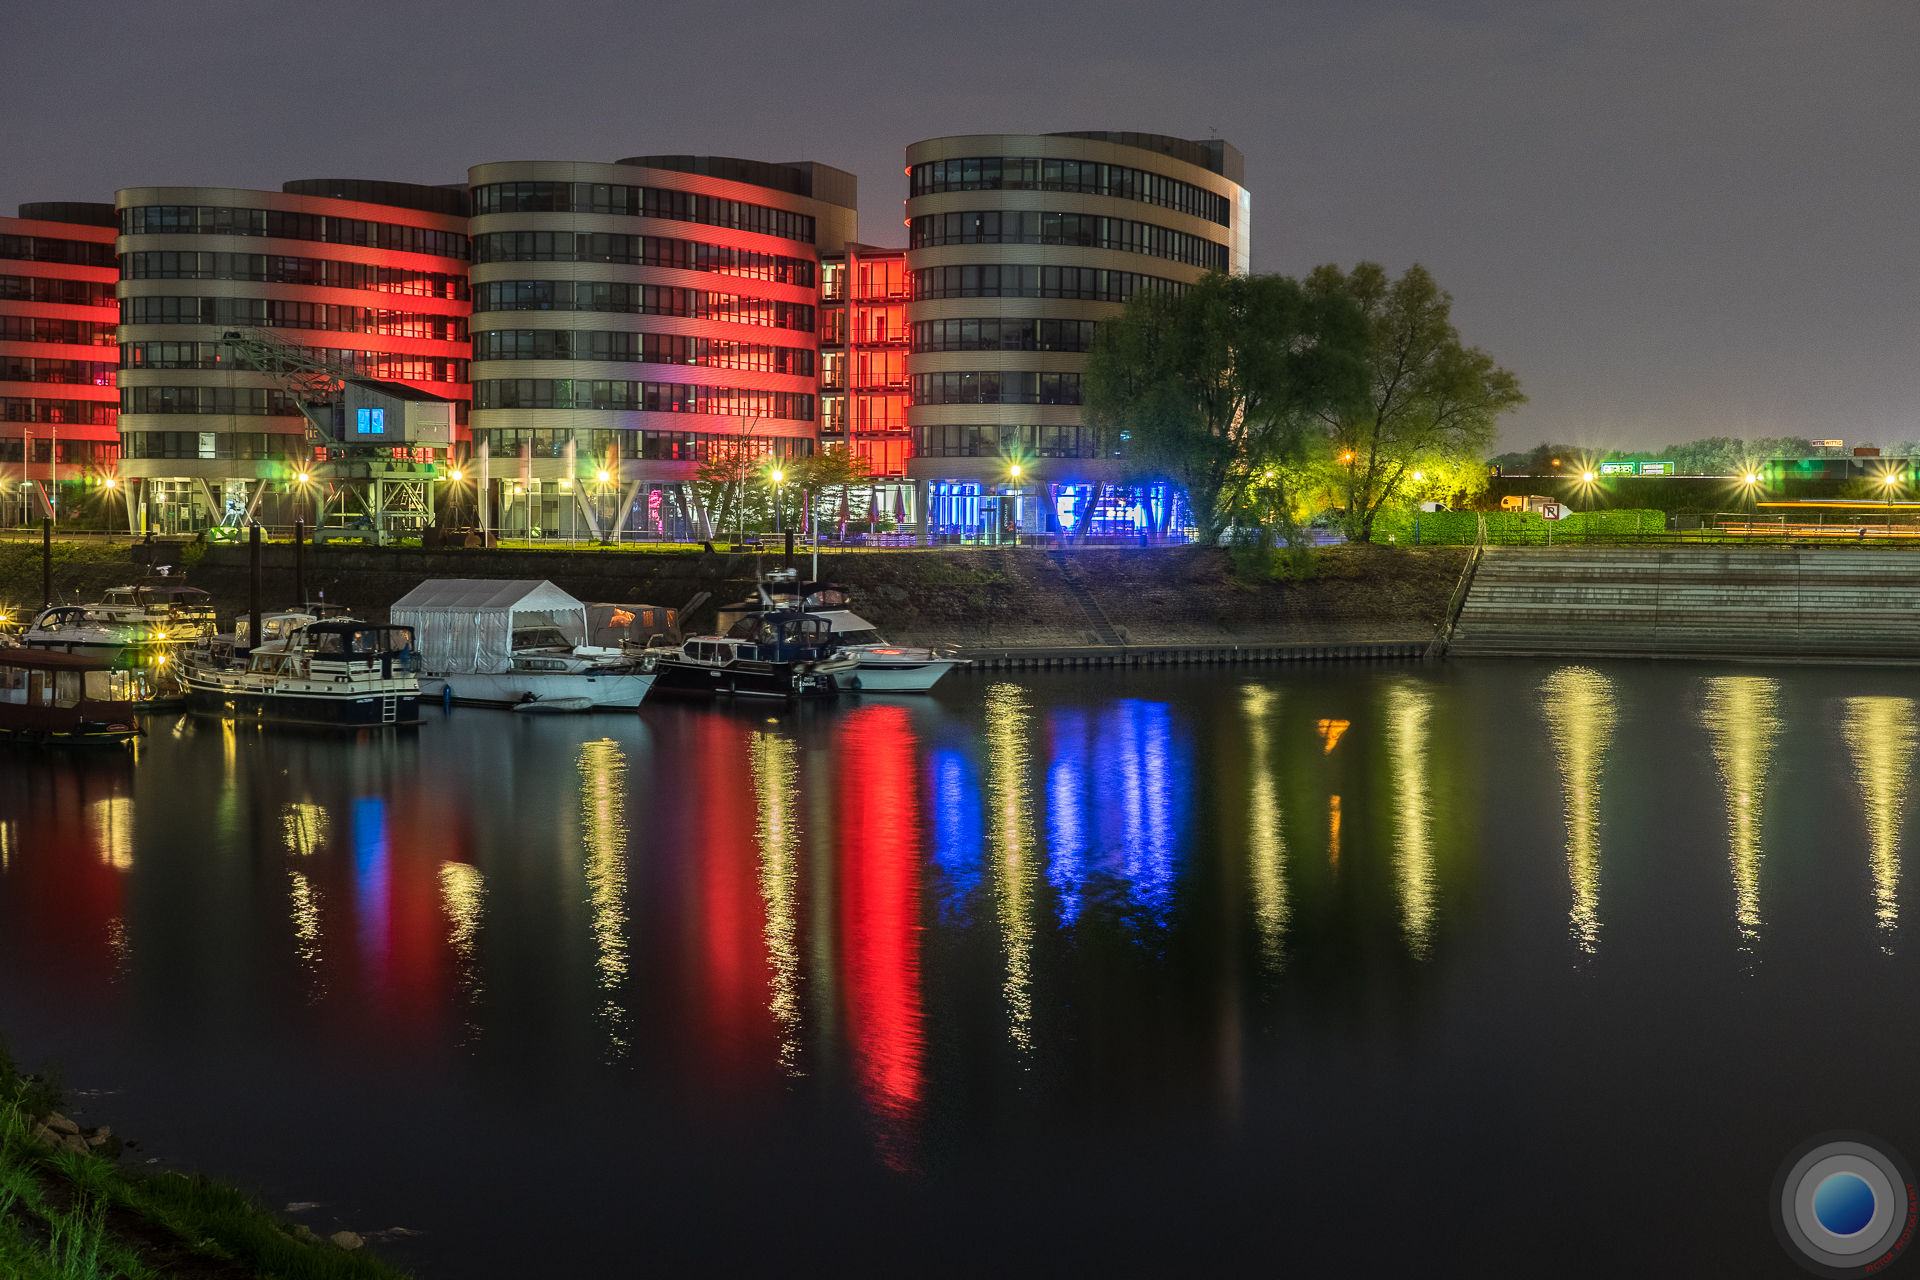 5 Boats in Blue and Red, Germany